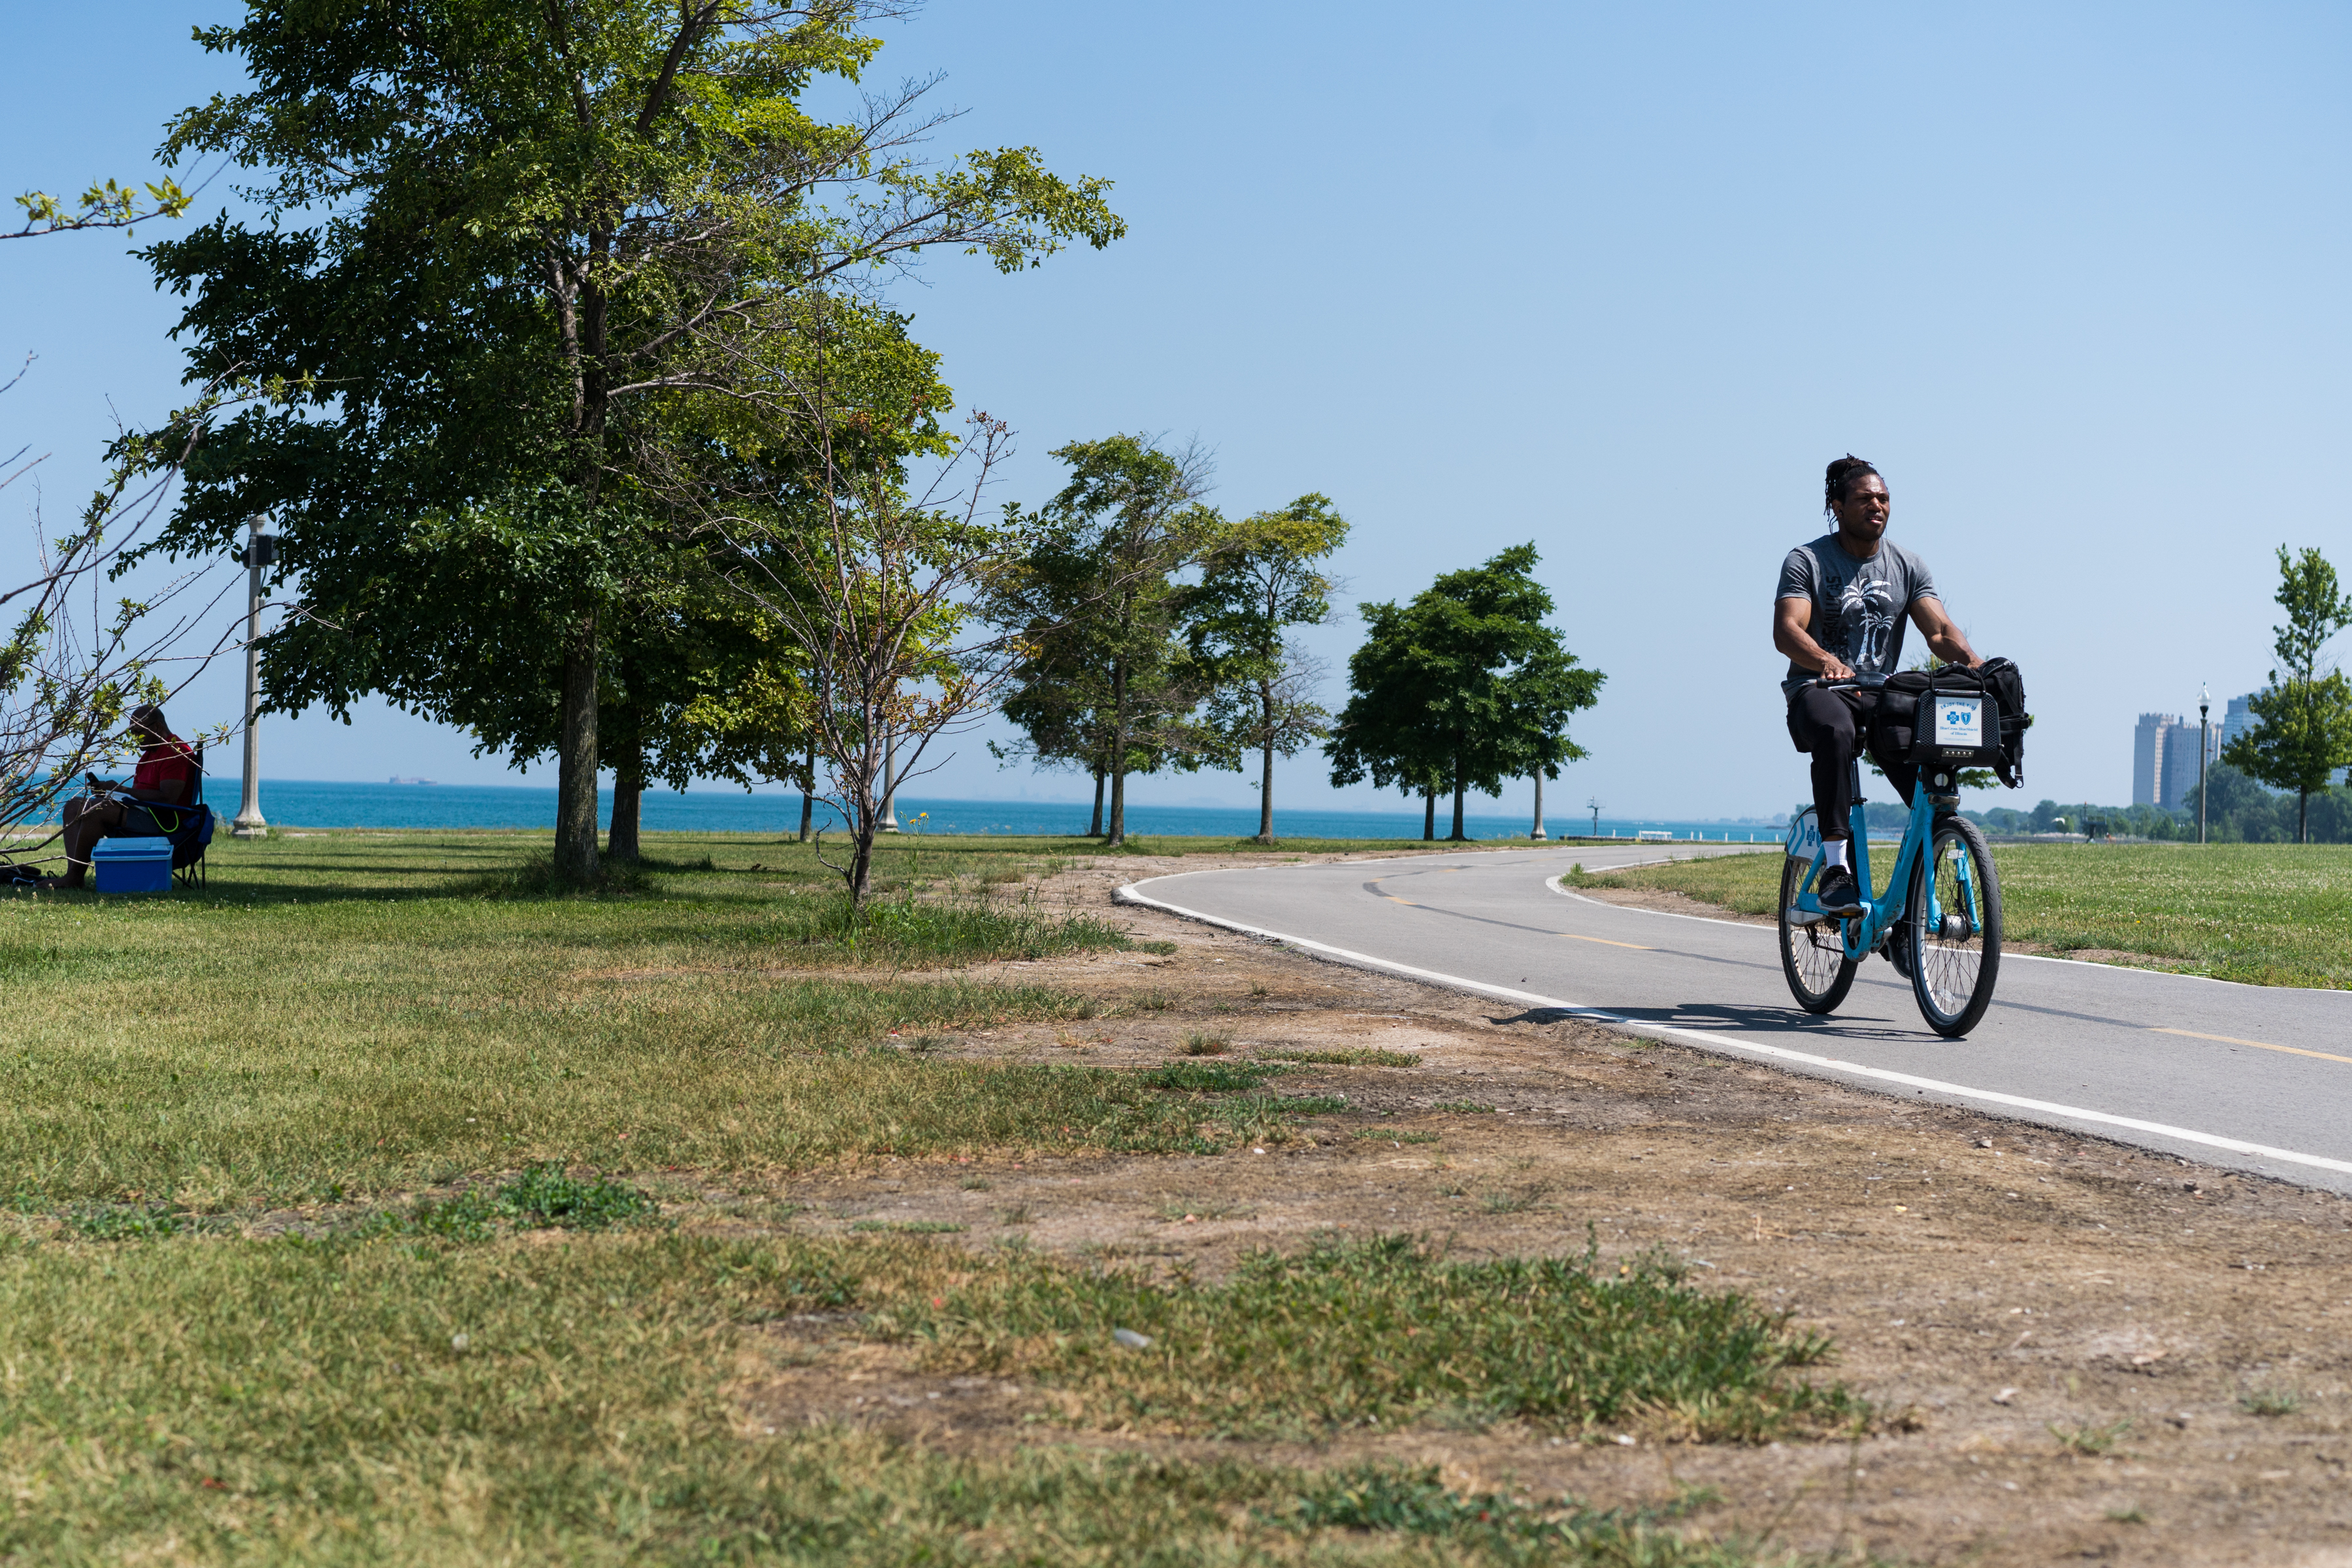 Lakefront Trail map: A biker's guide to the highlights and